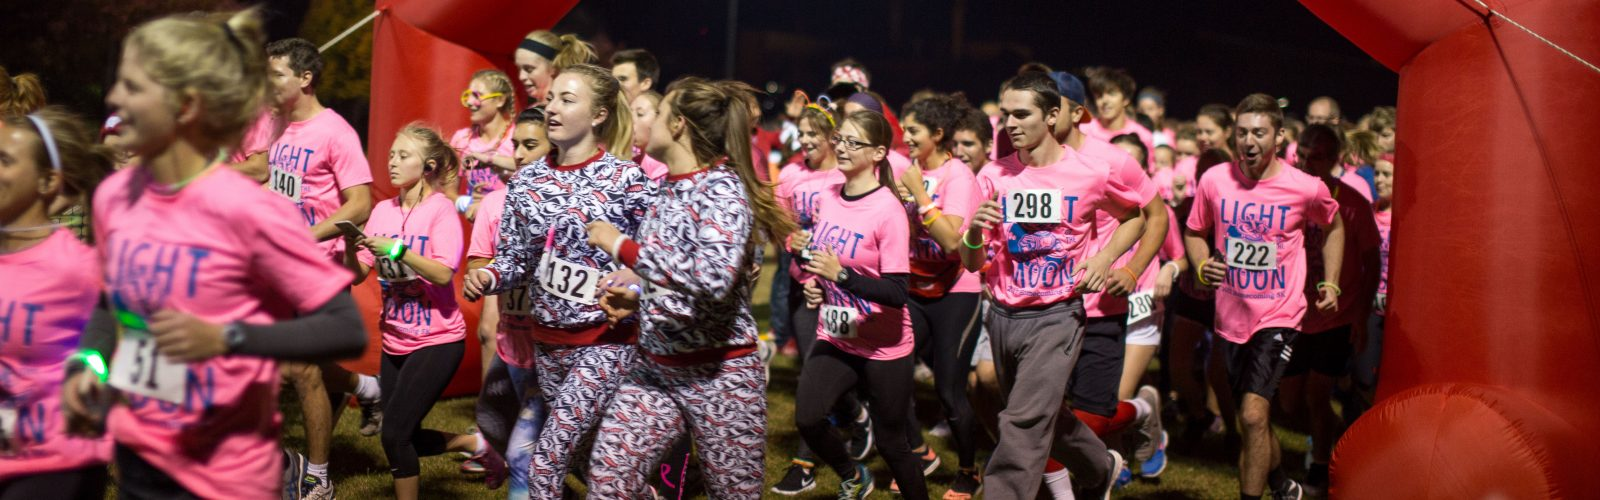 students running in the light of the moon 5K race